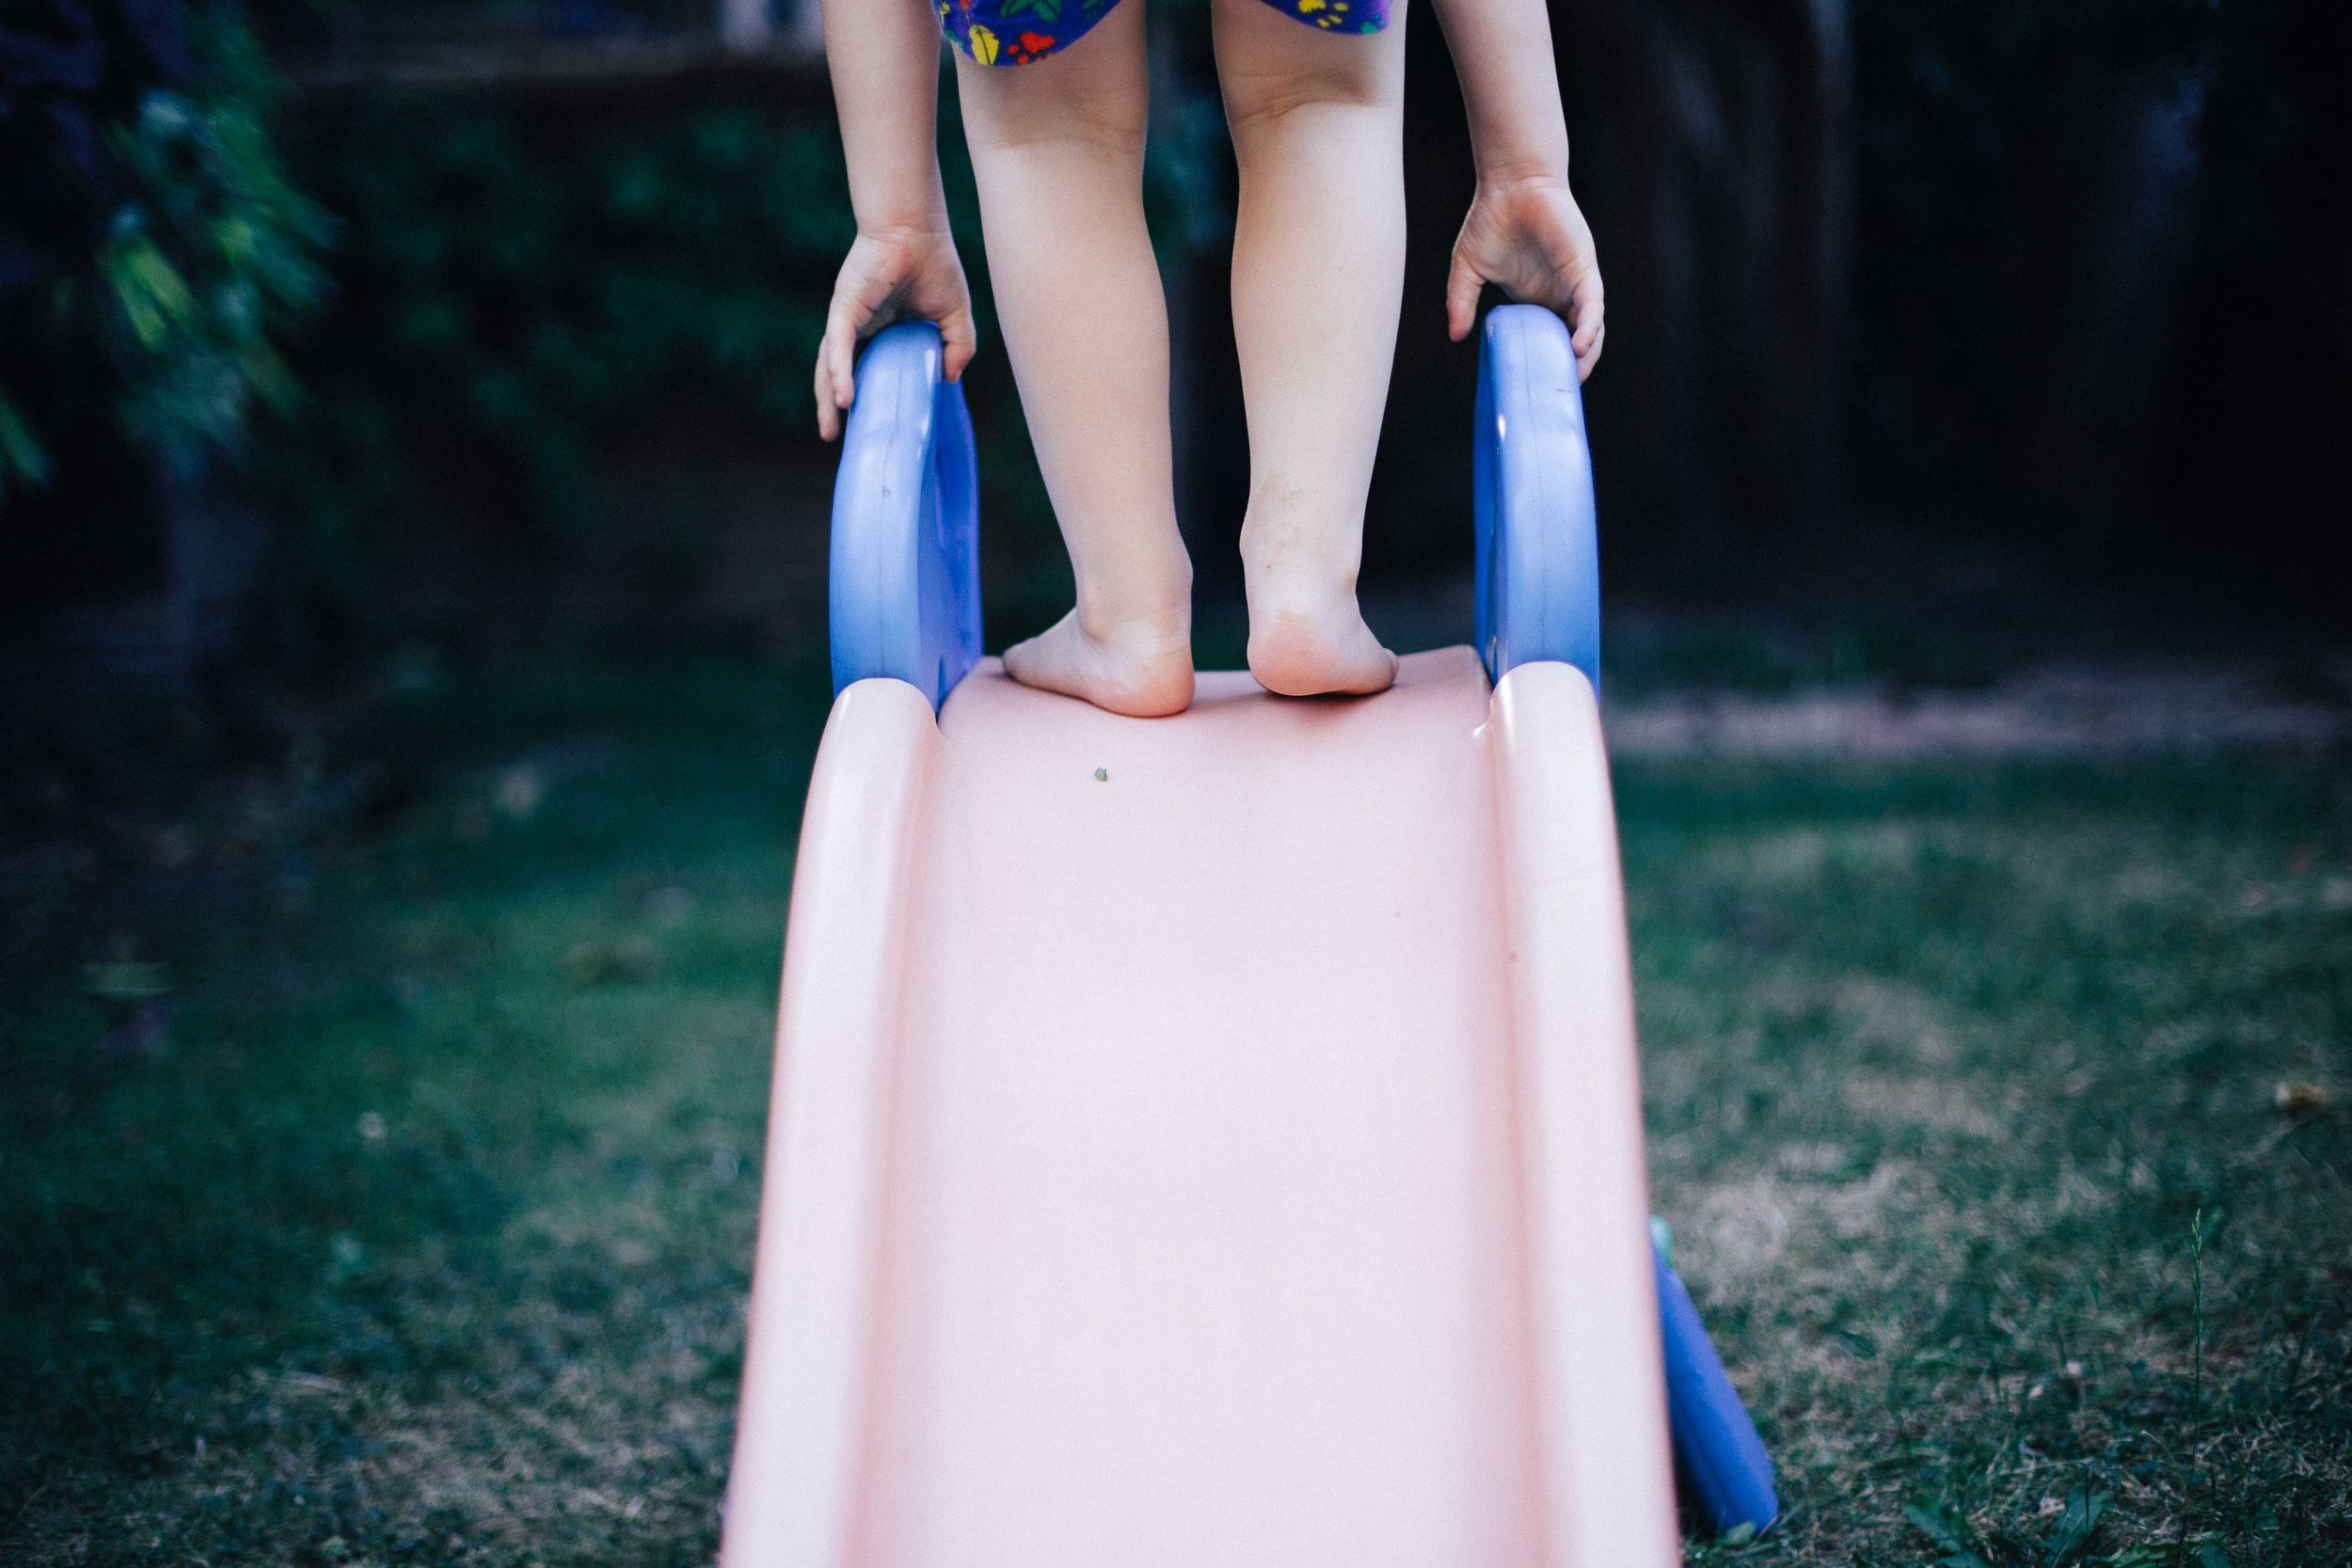 Child's feet at the top of a slide